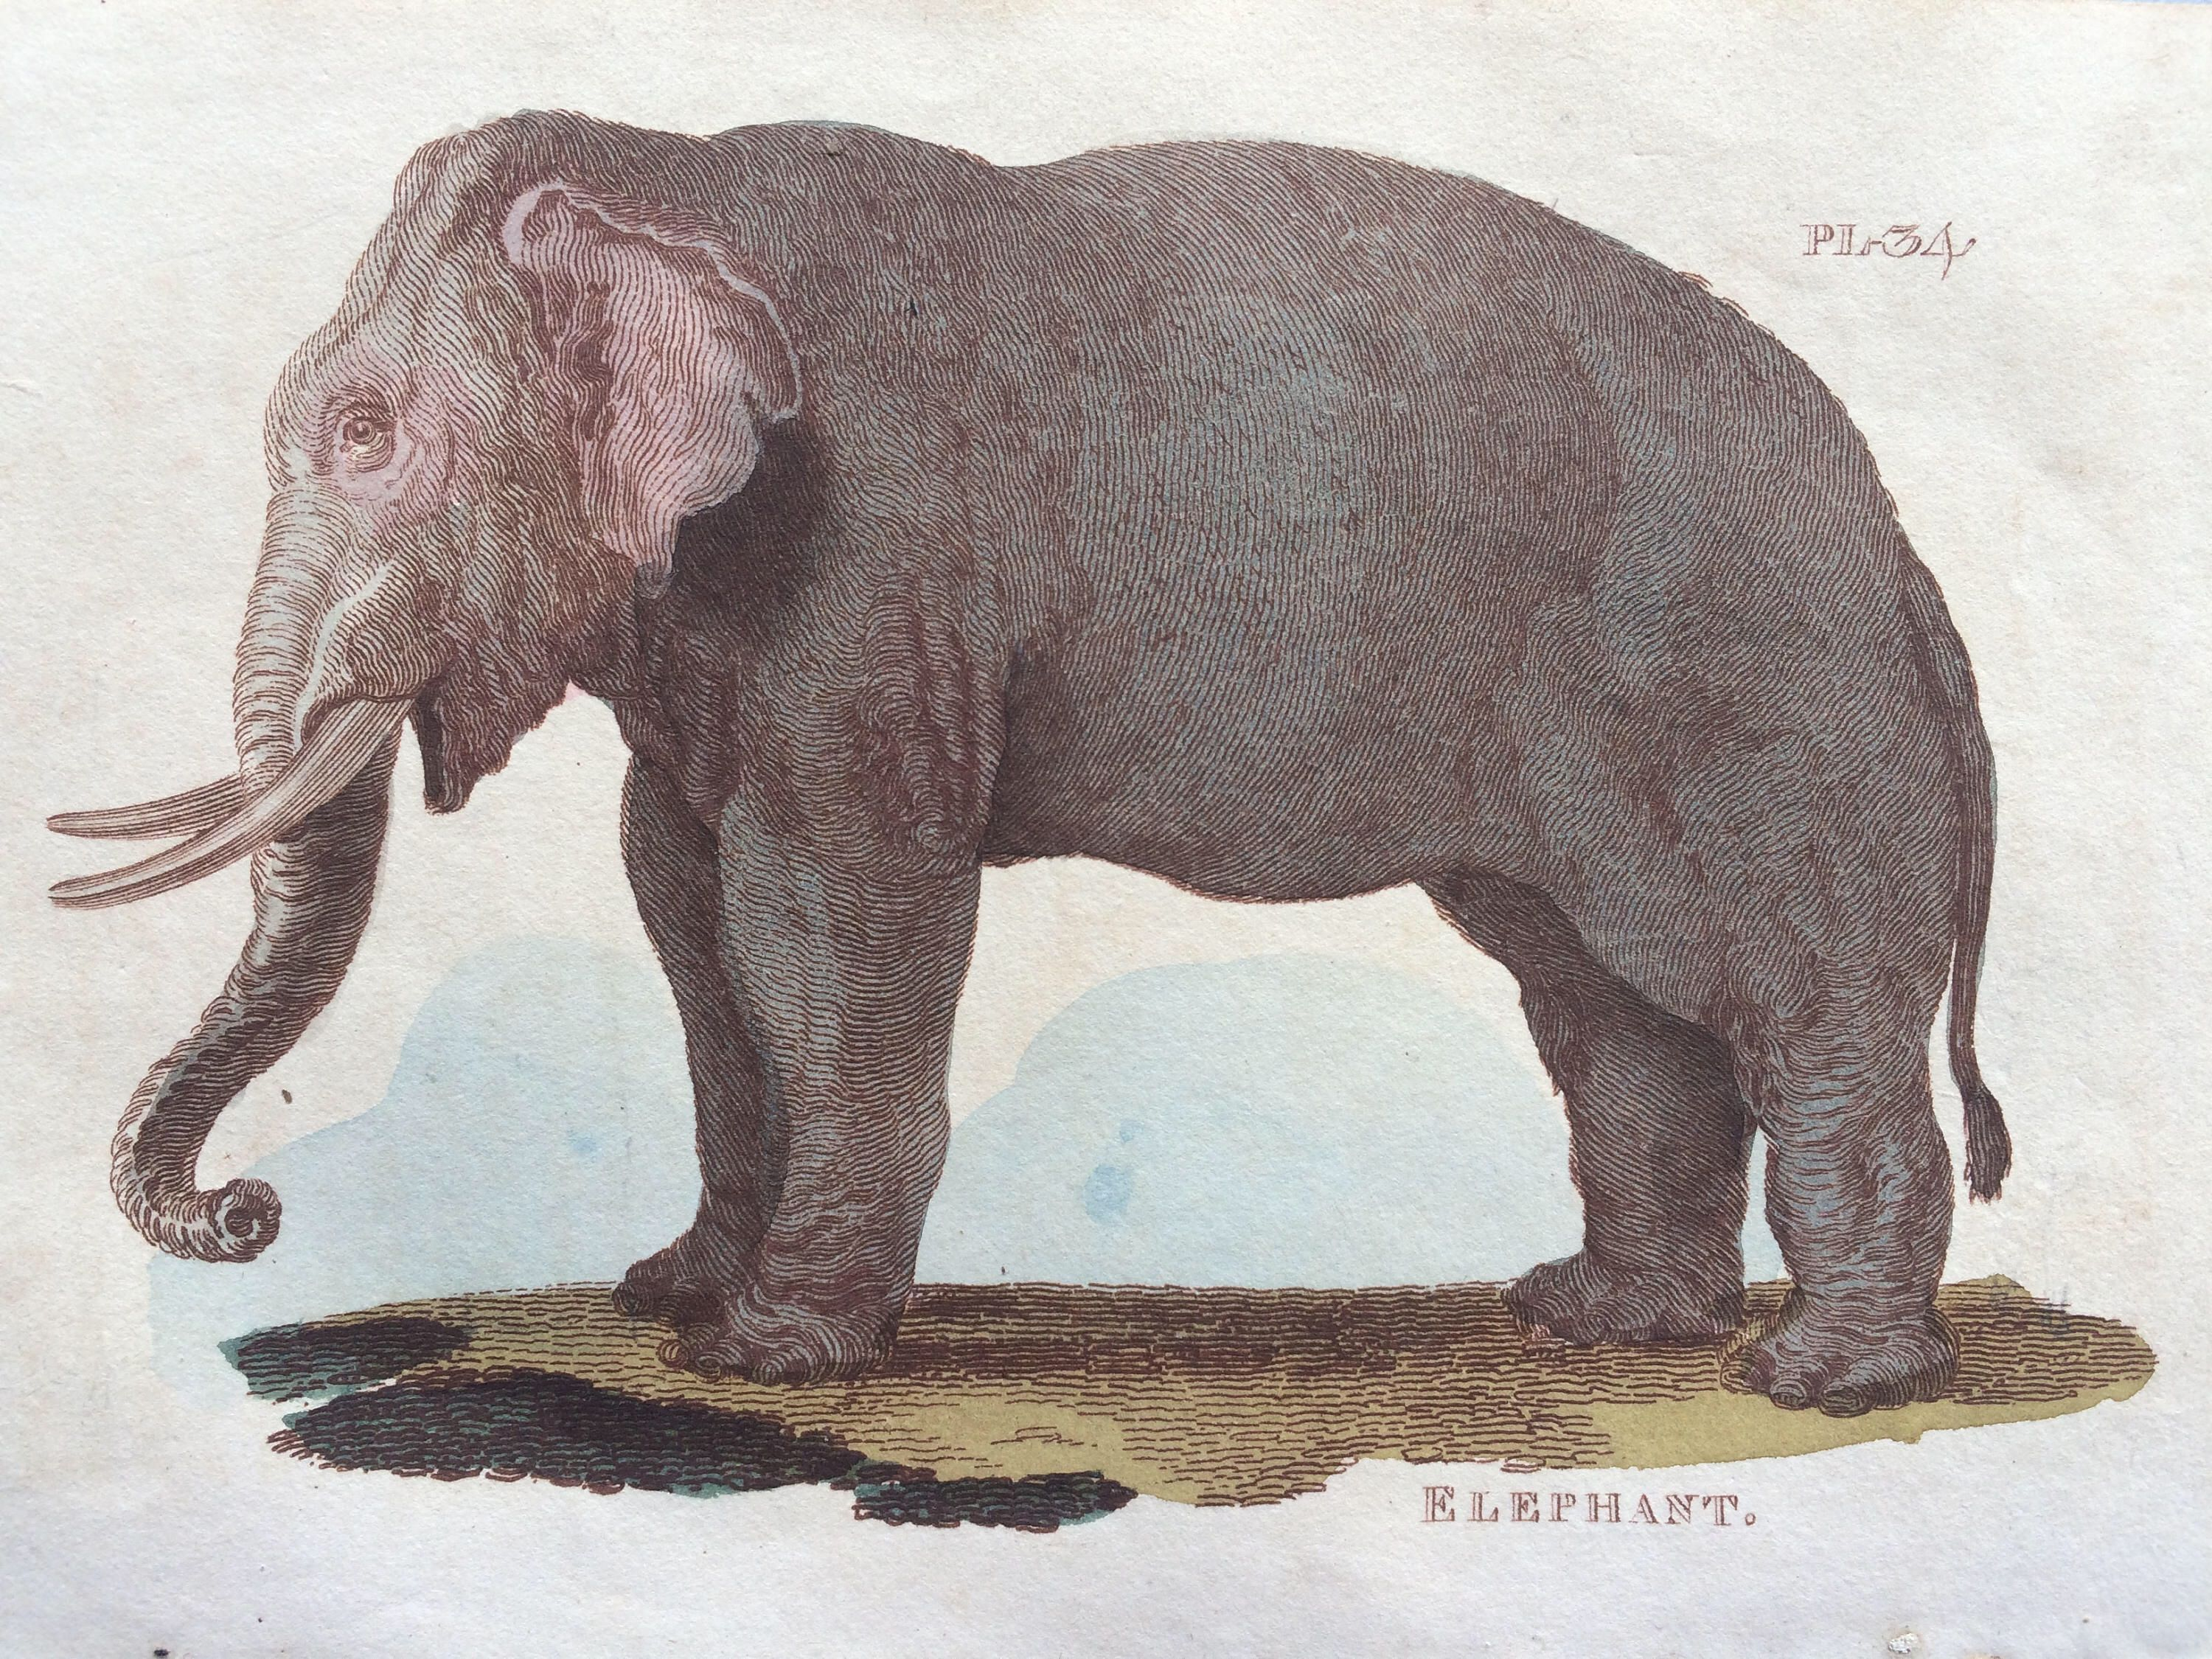 1811 original antique hand coloured engraving elephant 1811 original antique hand coloured engraving elephant wildlife wall decor zoology decorative art amipublicfo Image collections